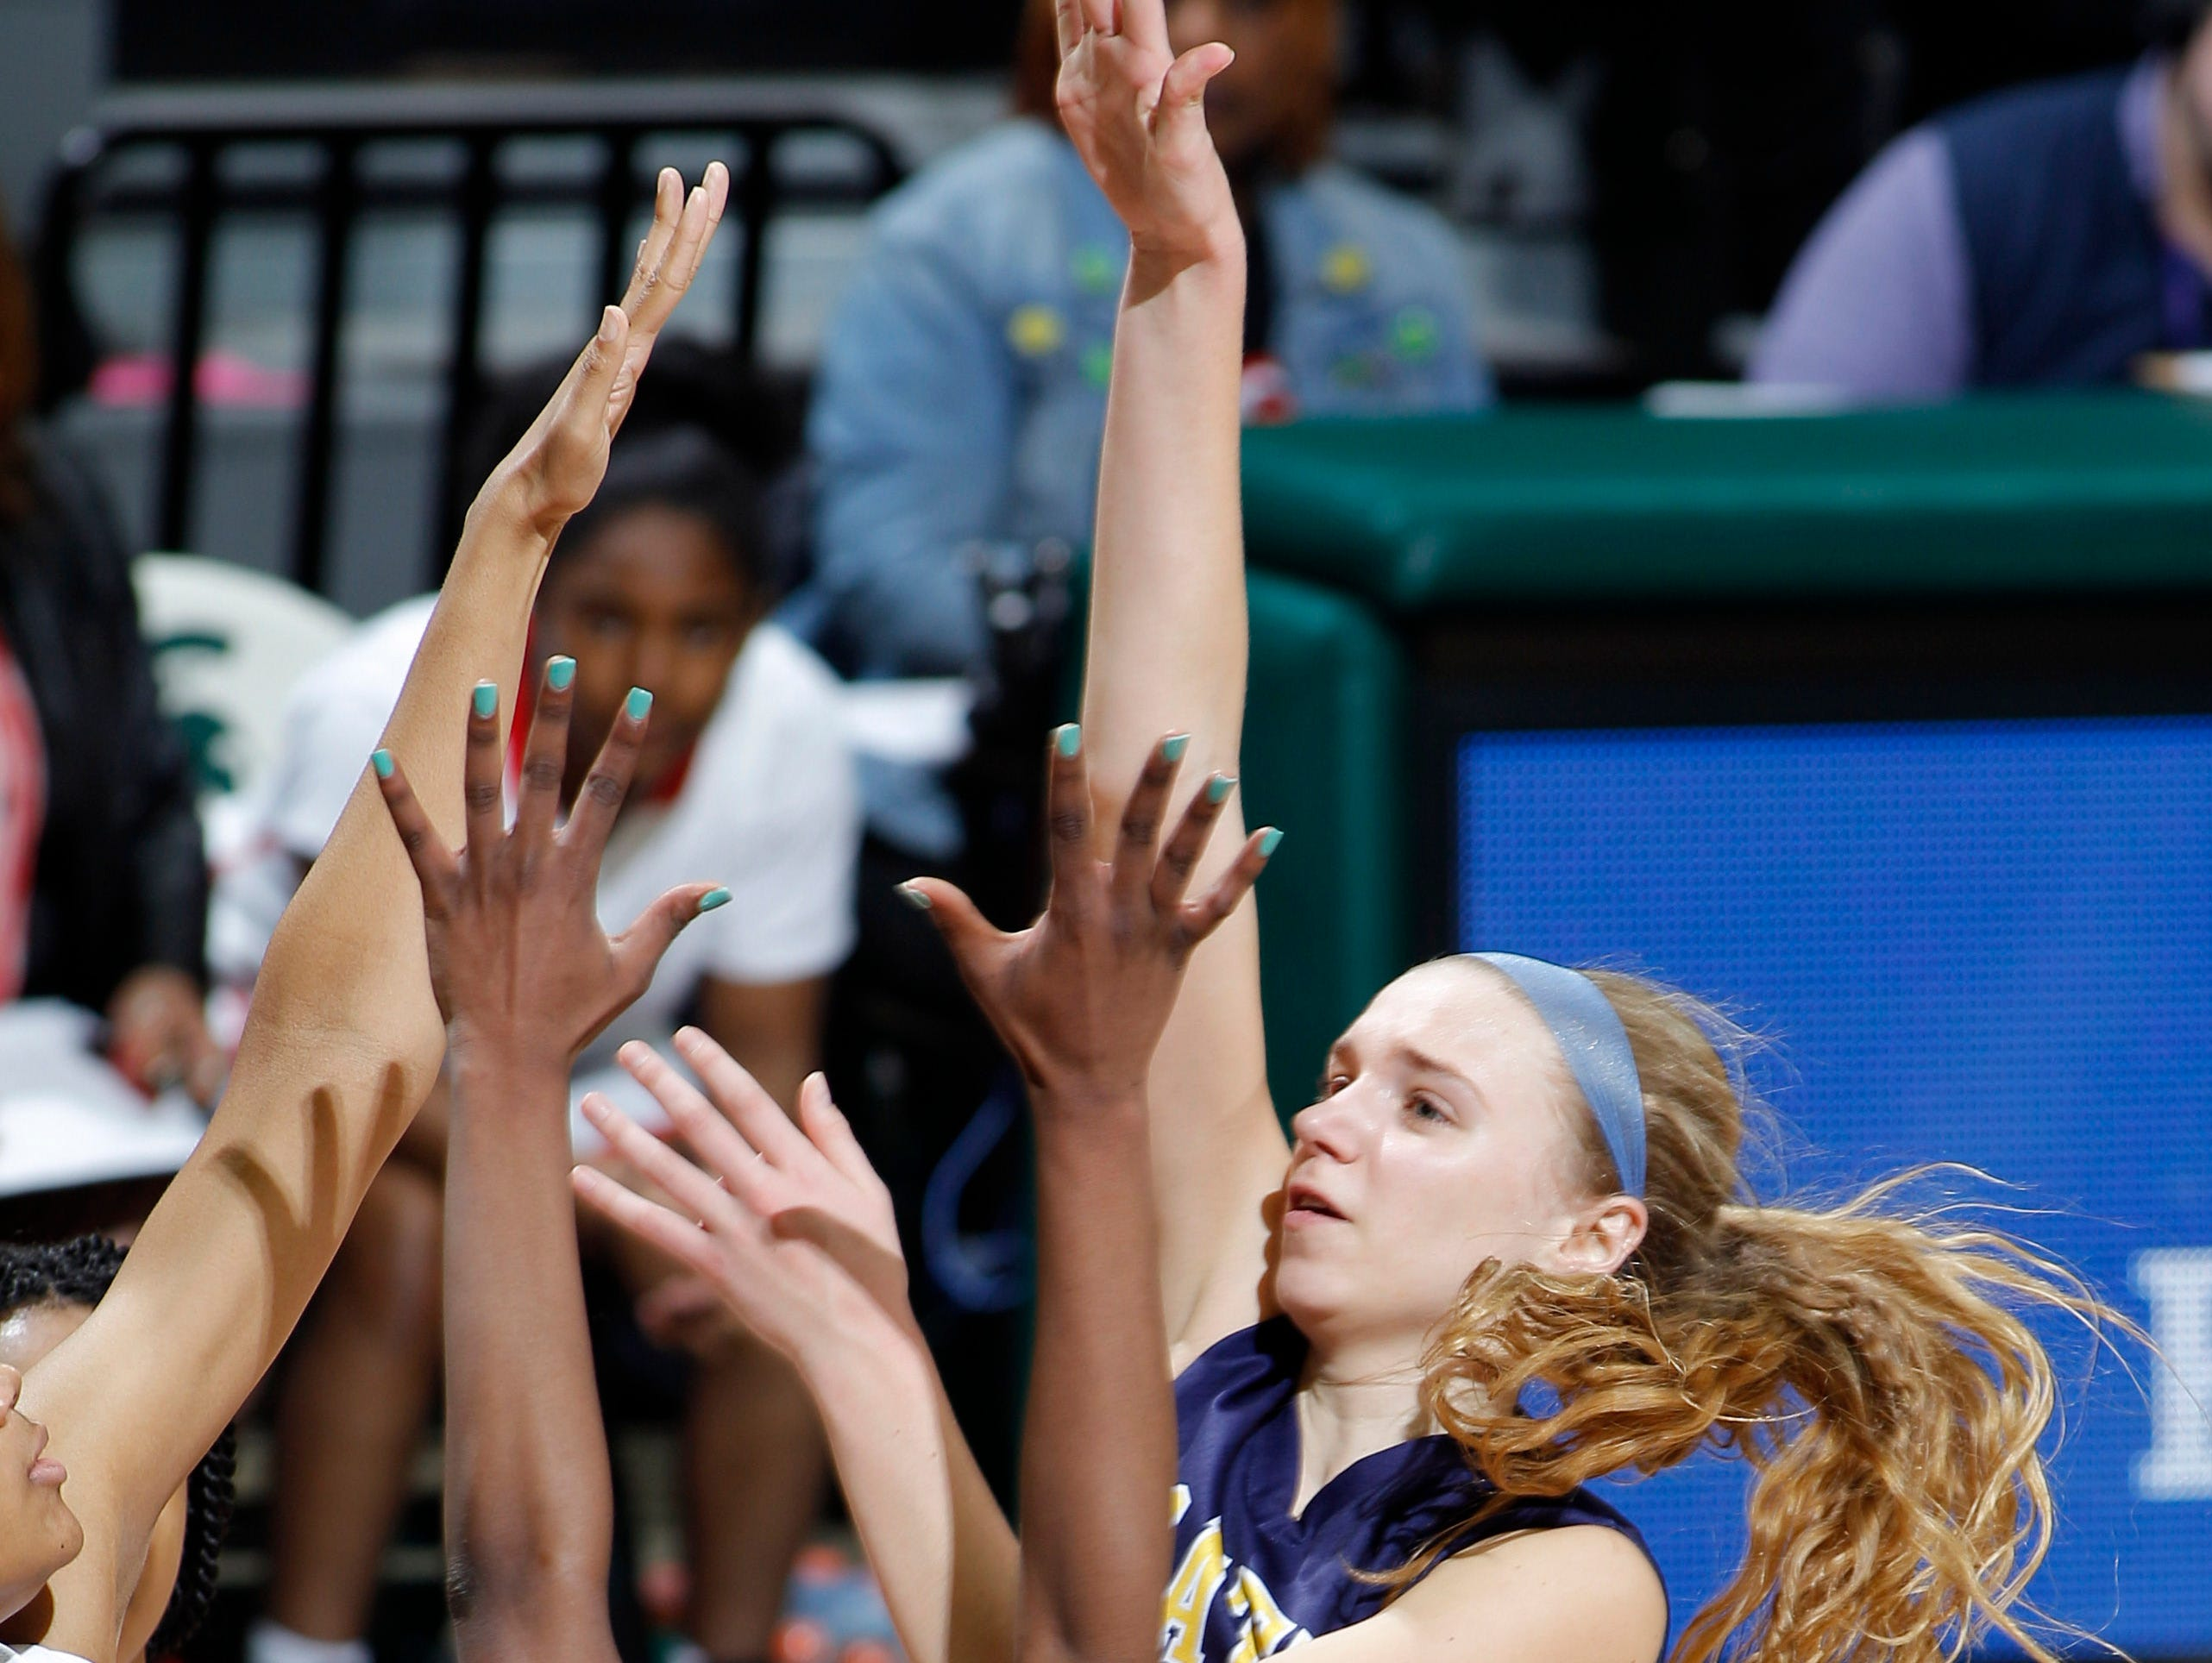 Pewamo-Westphalia's Emily Spitzley, right, shoots over Detroit Edison defenders during their MHSAA Class C championship game, Saturday, March 18, 2017, in East Lansing, Mich. P-W fell 46-44.